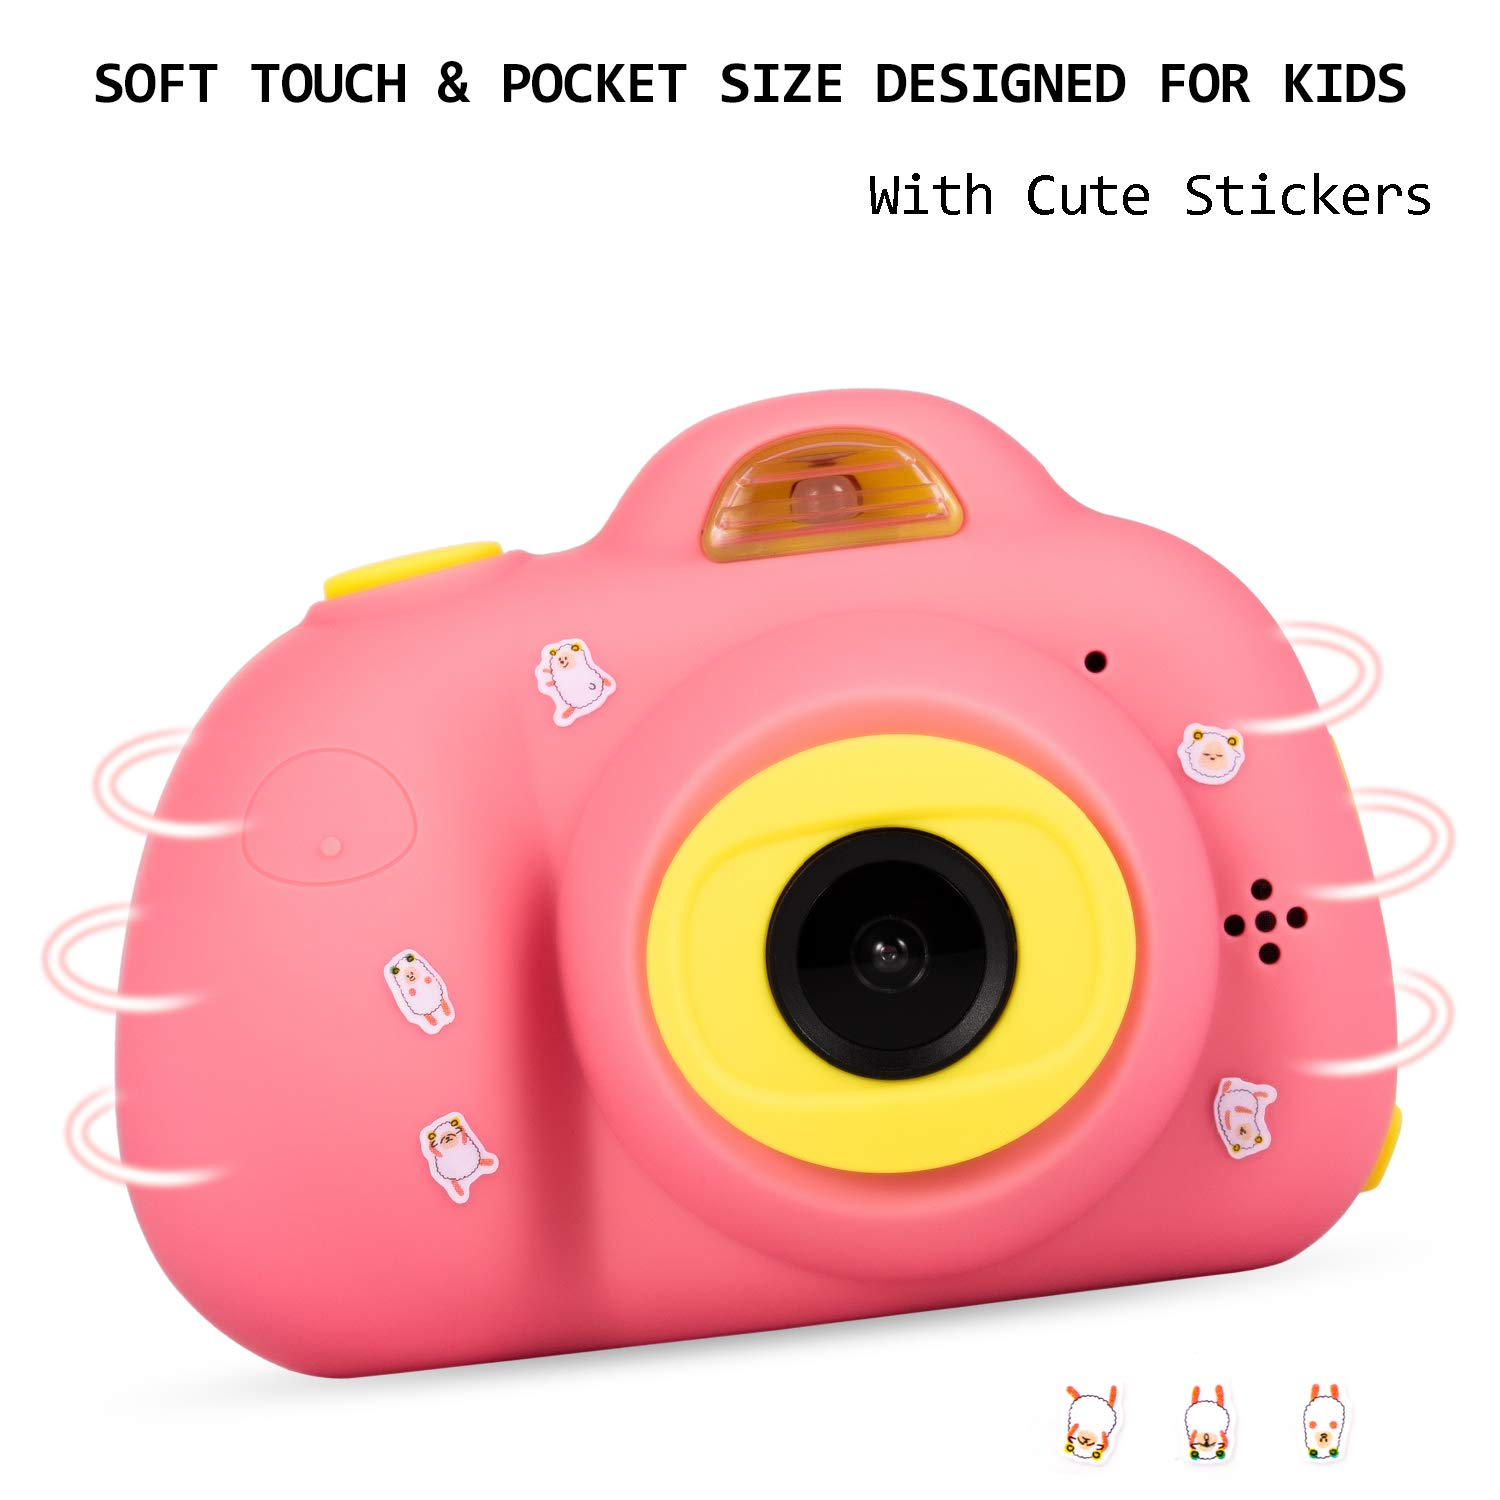 Deeteck Kids Digital Camera,Dual 8MP HD Video Toy Cameras,Gifts for 4-8 Year Old Girls & Boys,Mini Camcorders for Child Support Selfie with 16GB Memory Card(Pink) by Deeteck (Image #6)